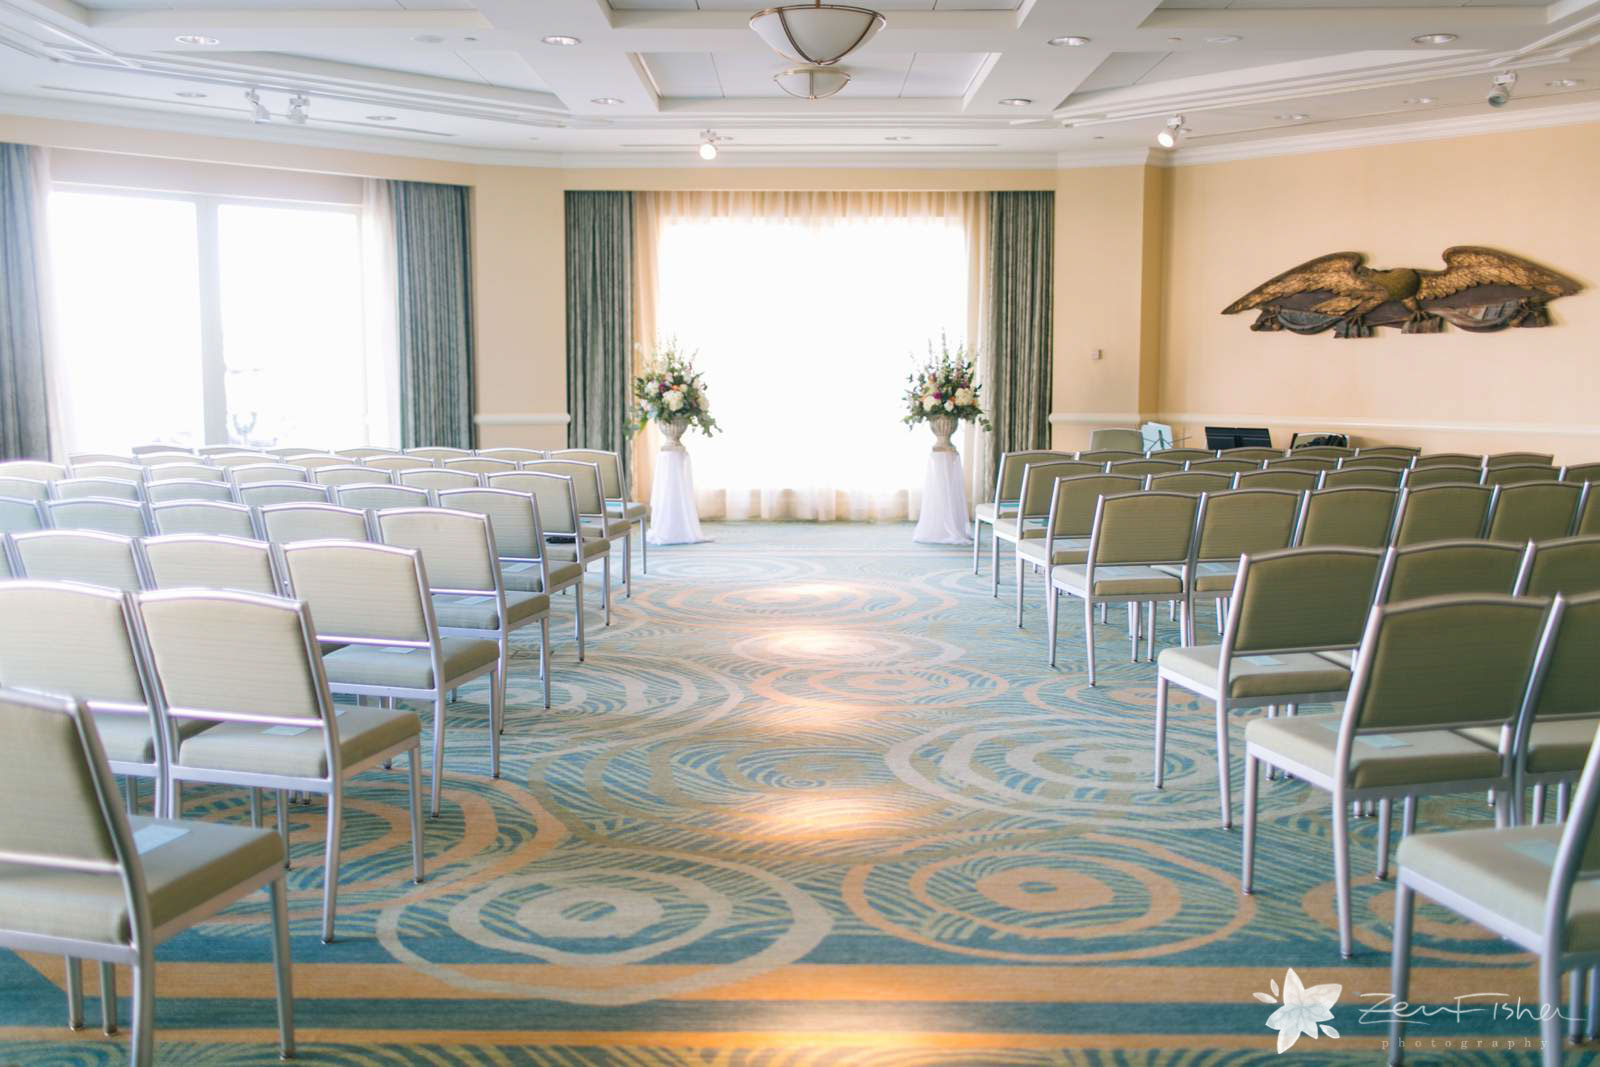 Simple modern ceremony room in Seaport hotel in Boston, large windows with natural light